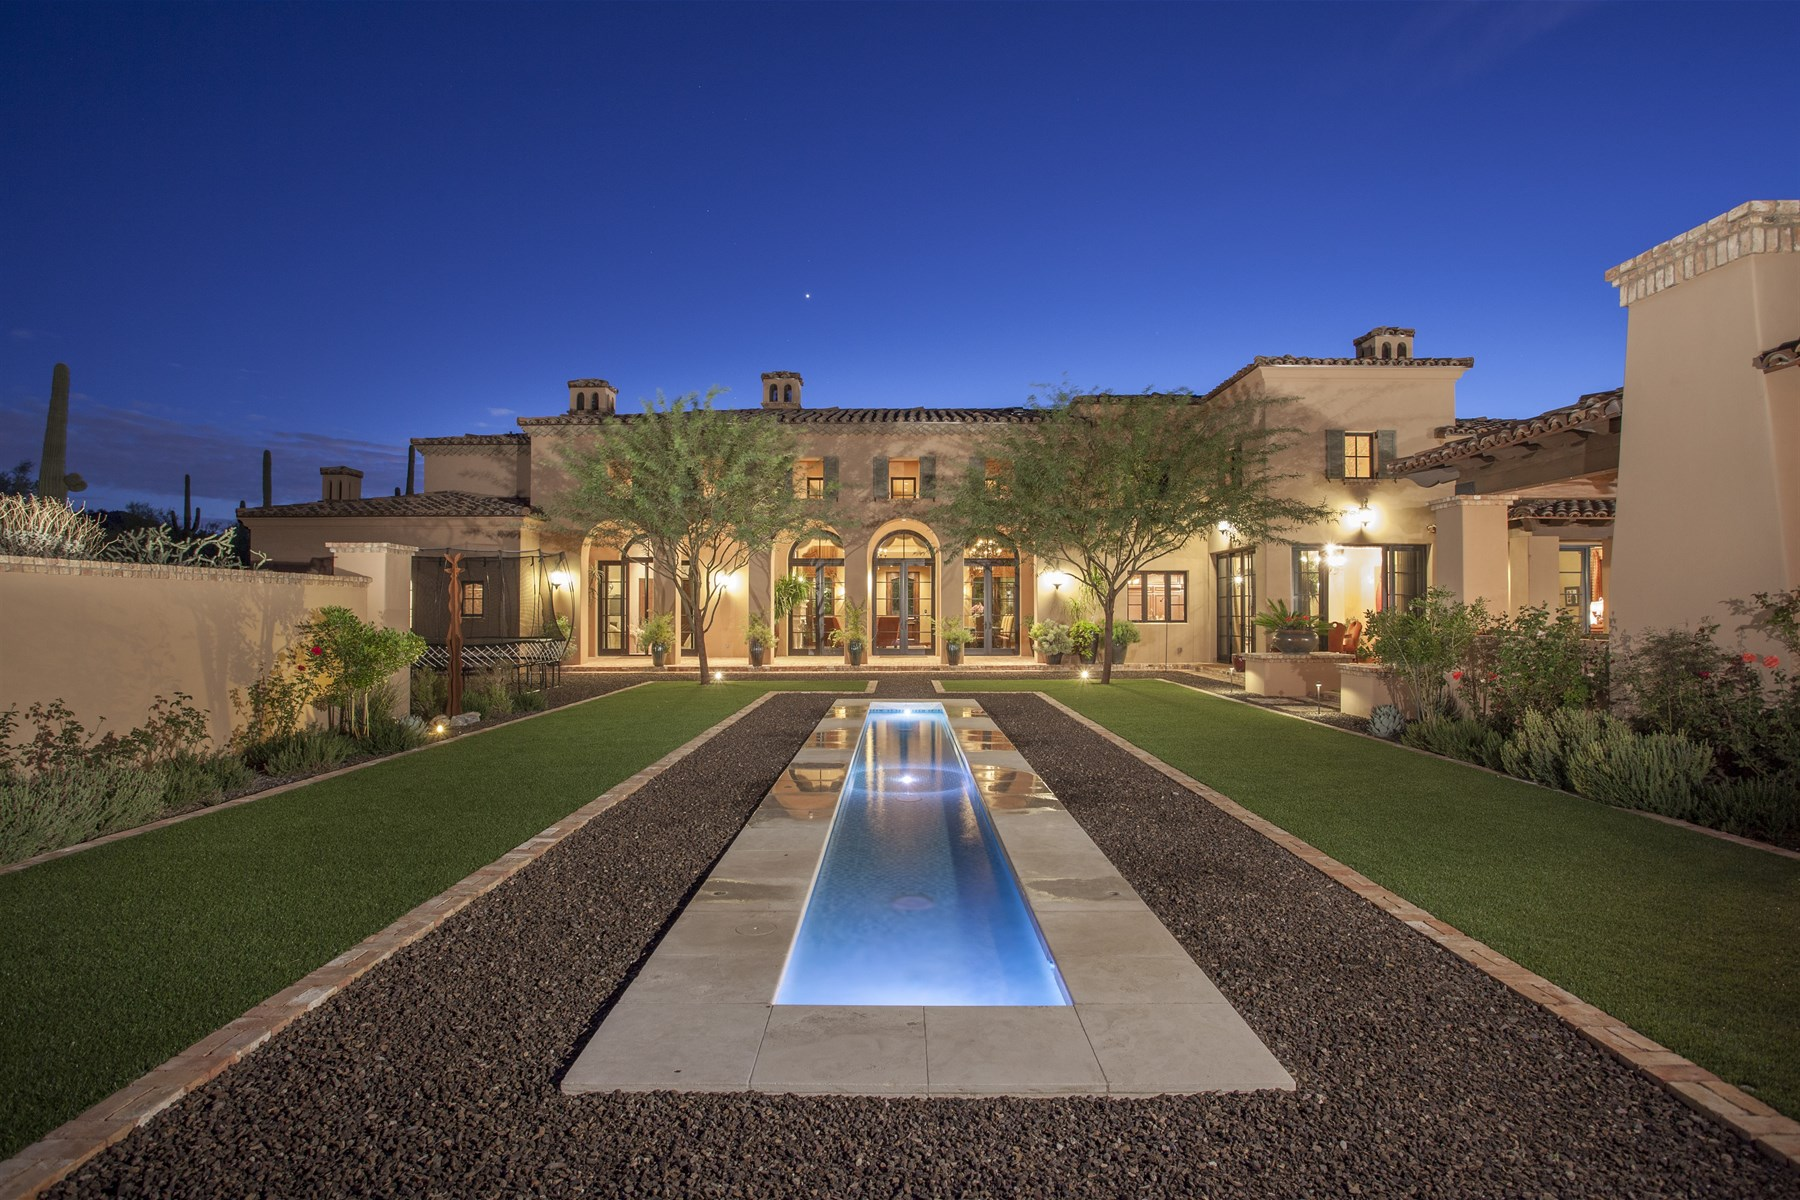 独户住宅 为 销售 在 Beautifully Crafted Luxury Estate in Guard Gated Silverleaf's Upper Canyon 11038 E Saguaro Canyon Trail #1531 Scottsdale, 亚利桑那州 85255 美国